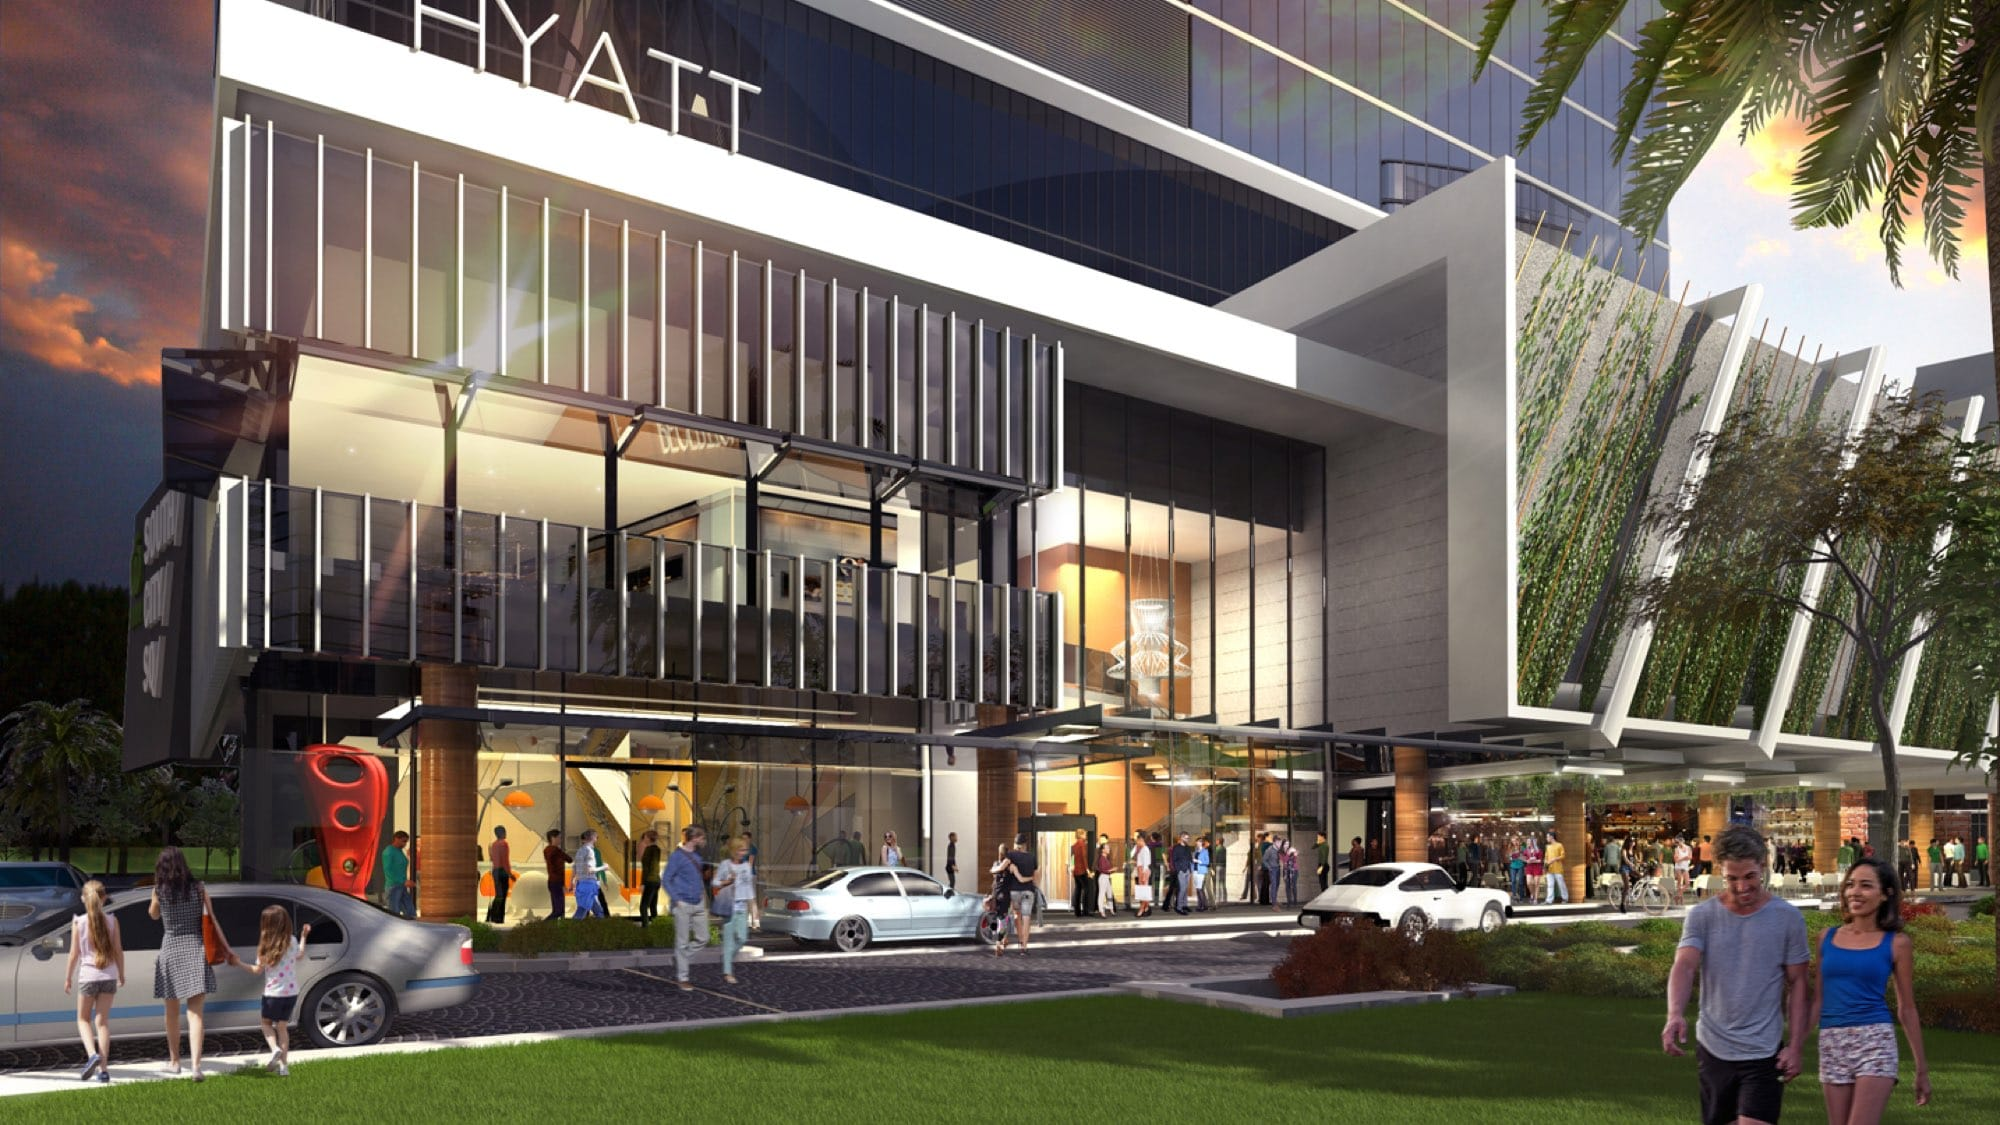 Hyatt Selected as Hotel Operator for South City Square